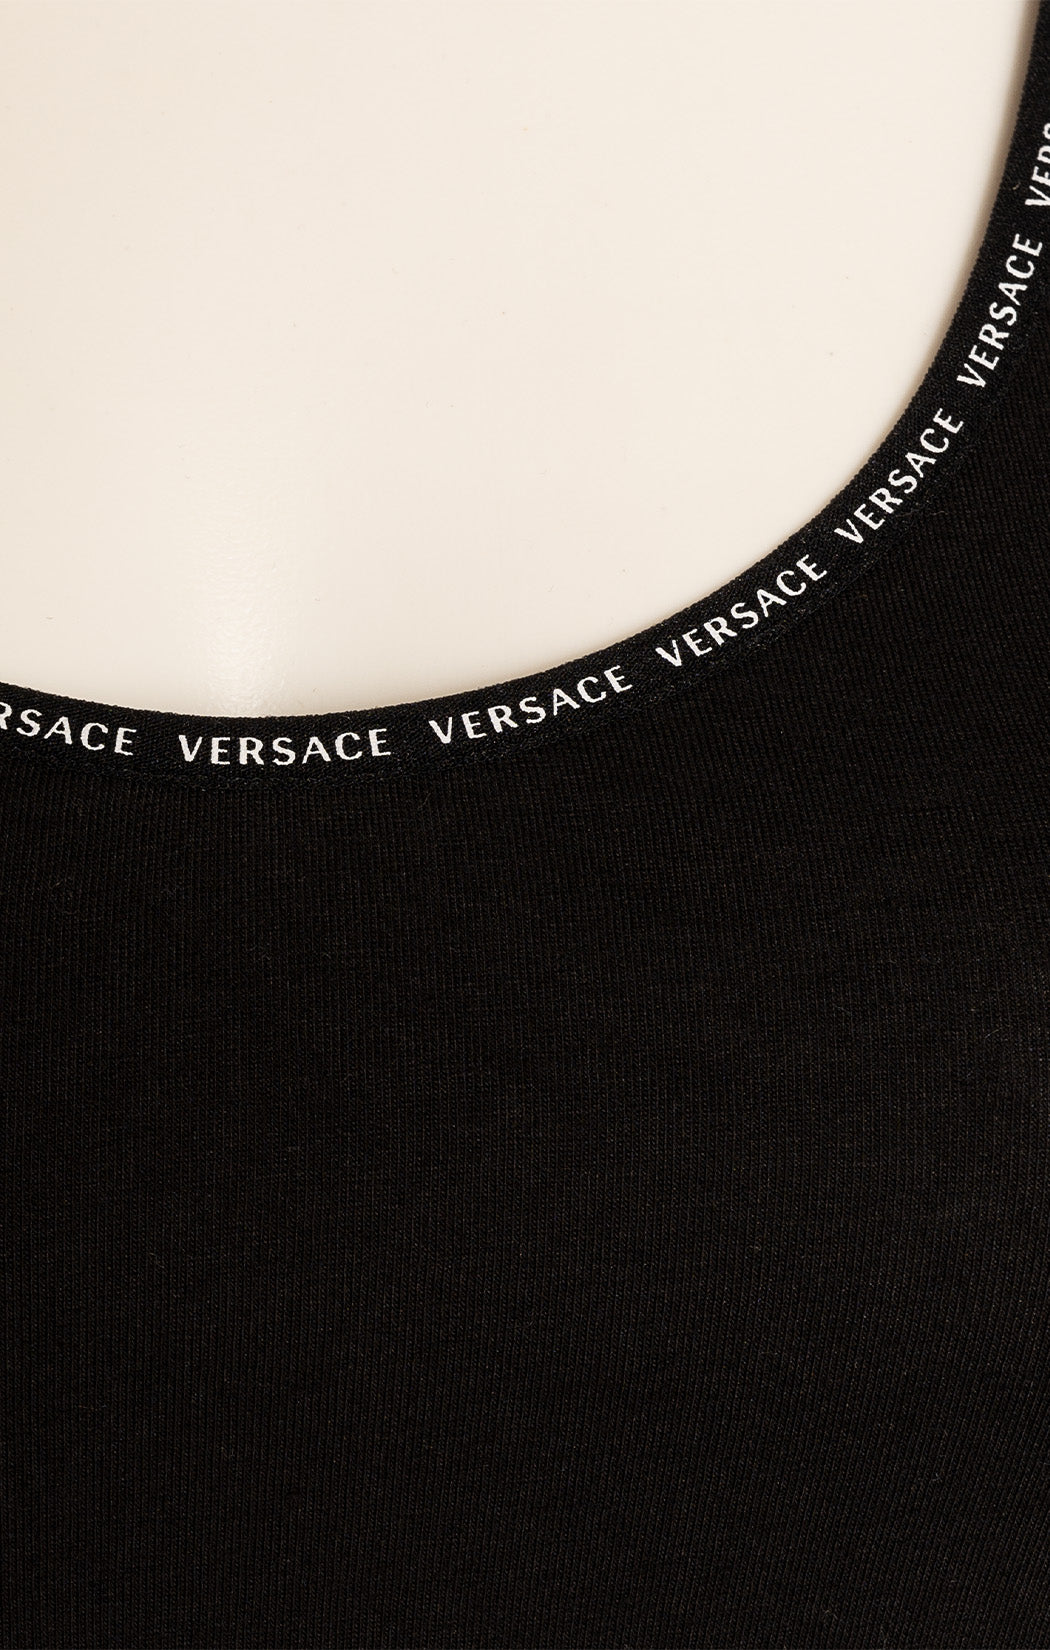 Black with white Versace logo border top and matching panty